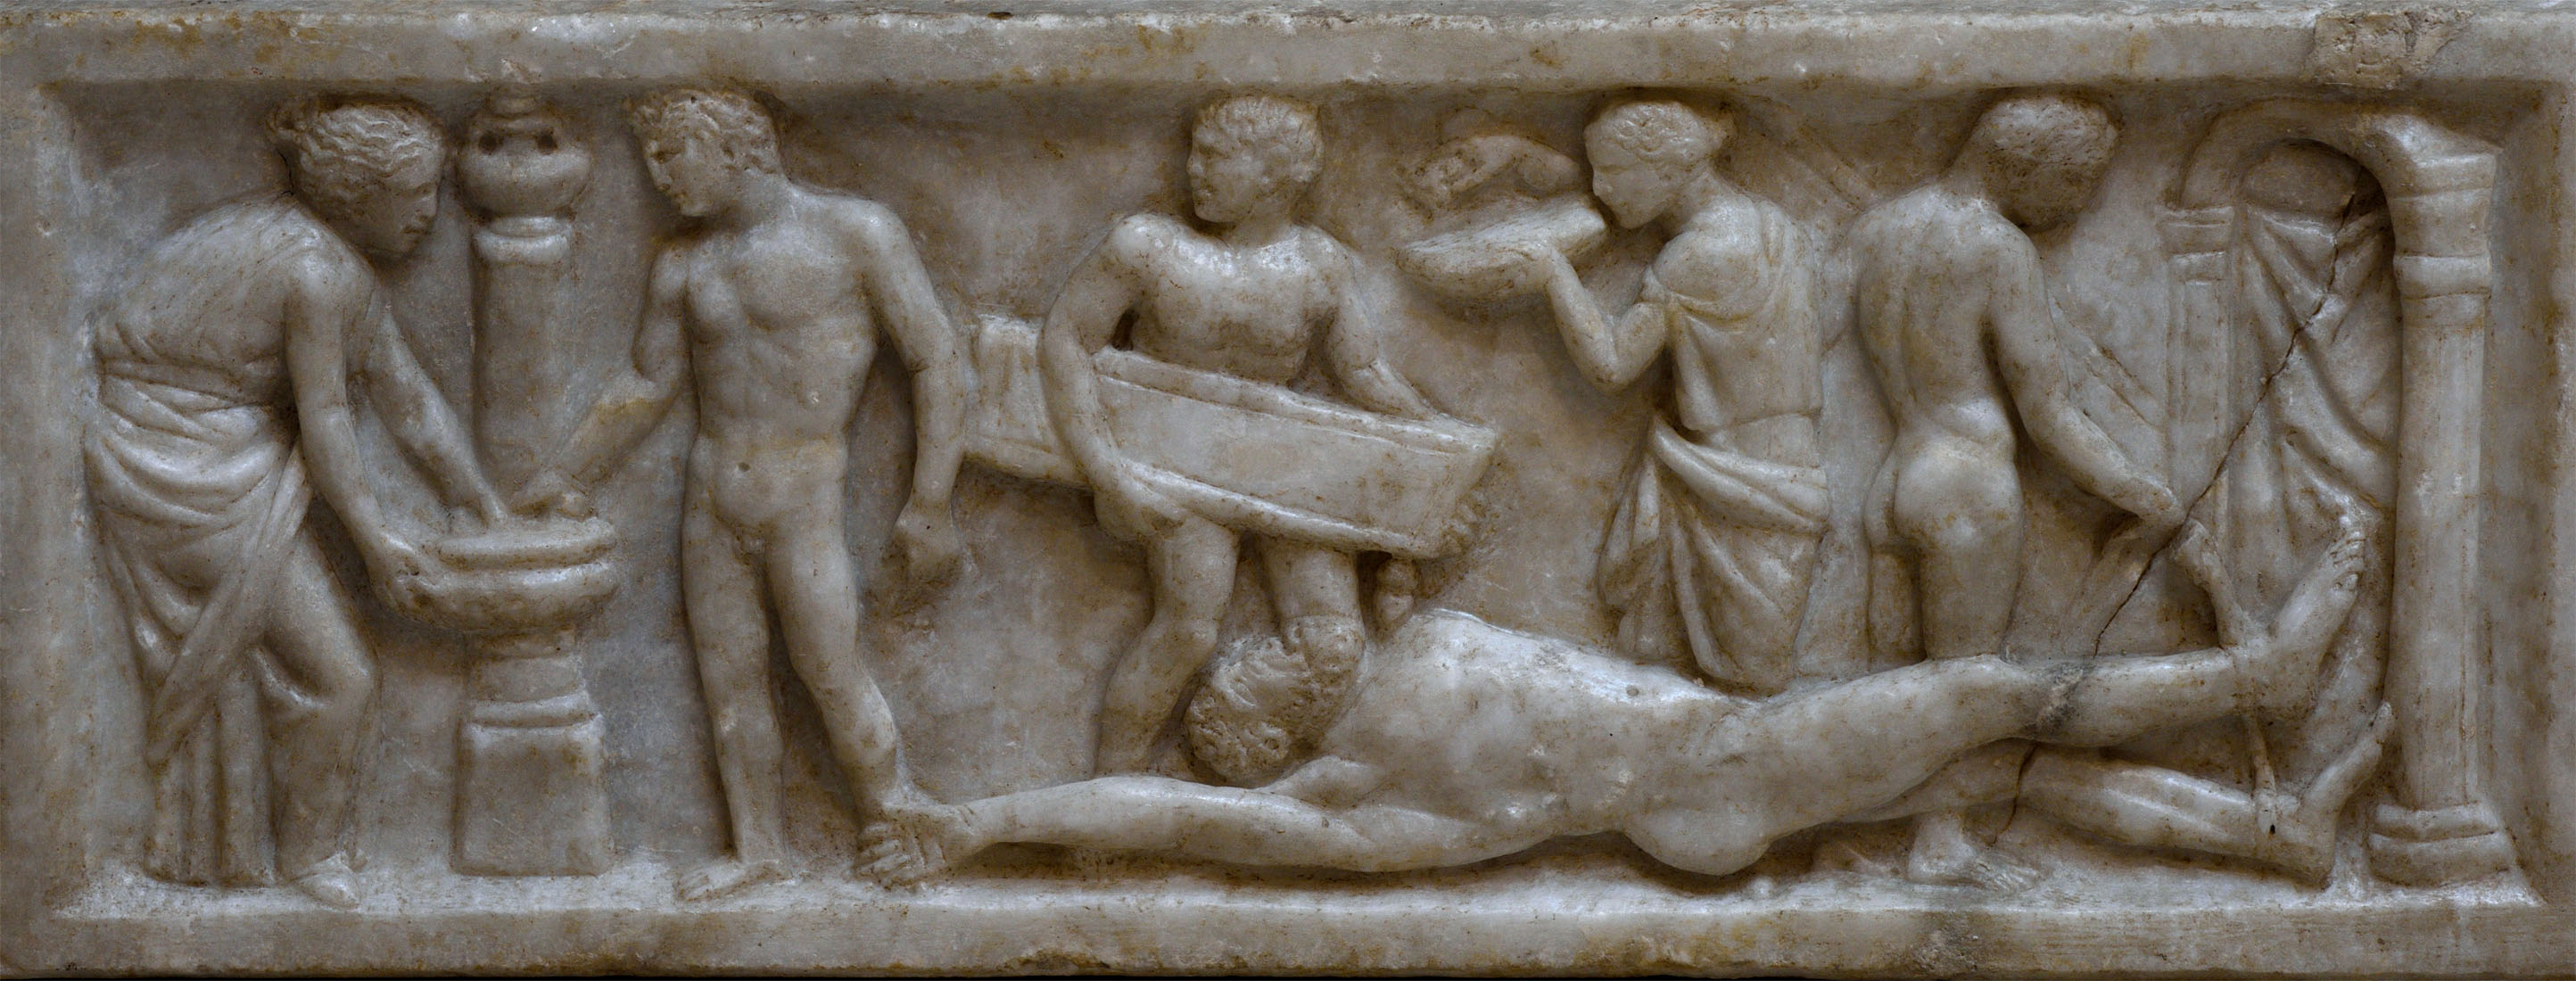 """""""Achilles washing Hector's corpse prior to its restoration to Priam"""" — scene from the lid of the sarcophagus with representation of scenes from the Iliad. Greek marble. 160 CE. Inv. No. SBAO 43504. Ostia, Archaeological Museum"""